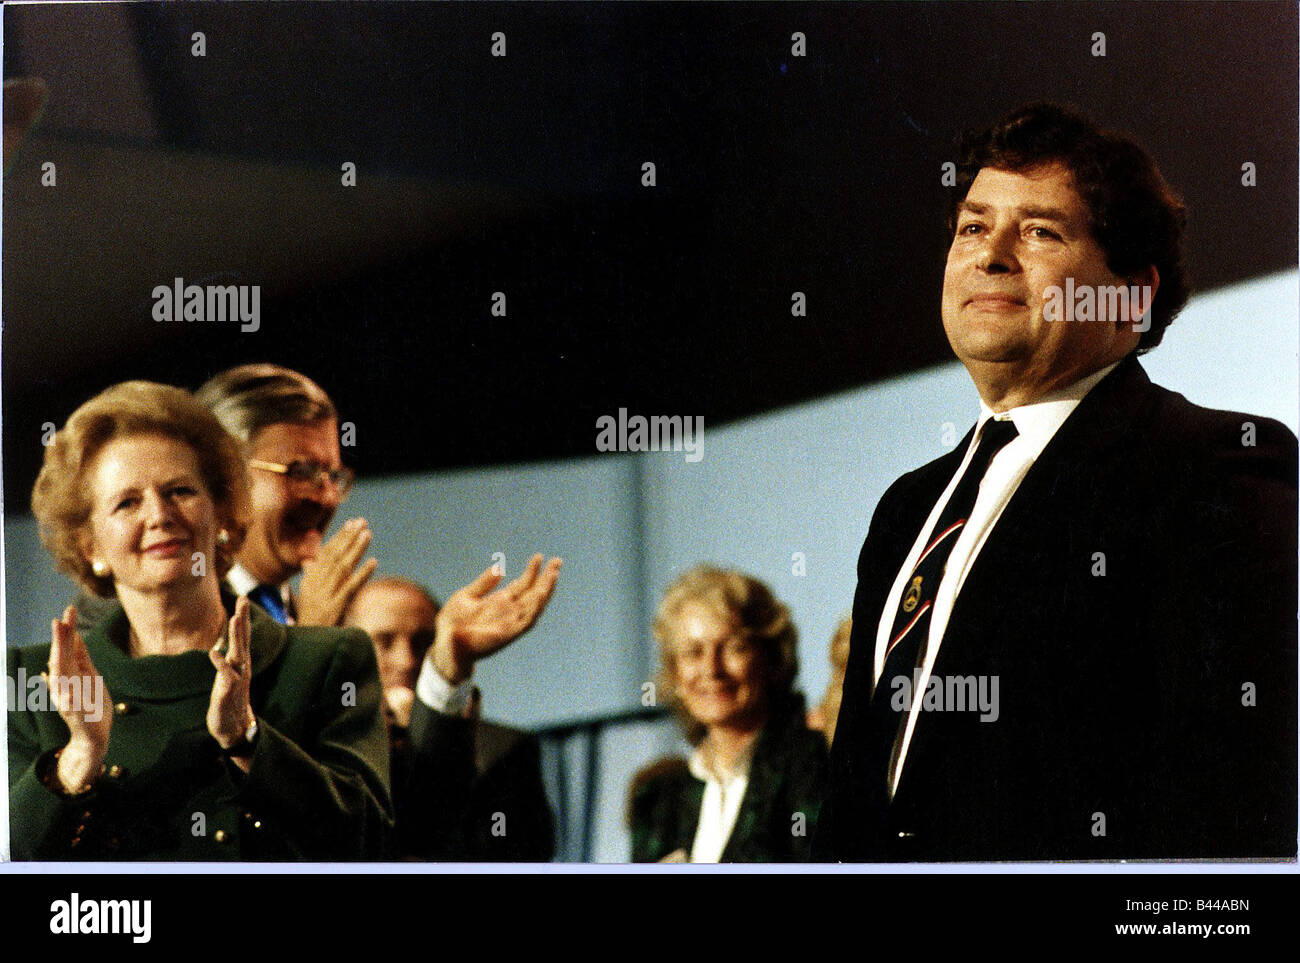 Nigel Lawson receiving standing ovation at Blackpool Conservative Conference on stage with Margaret Thatcher and - Stock Image